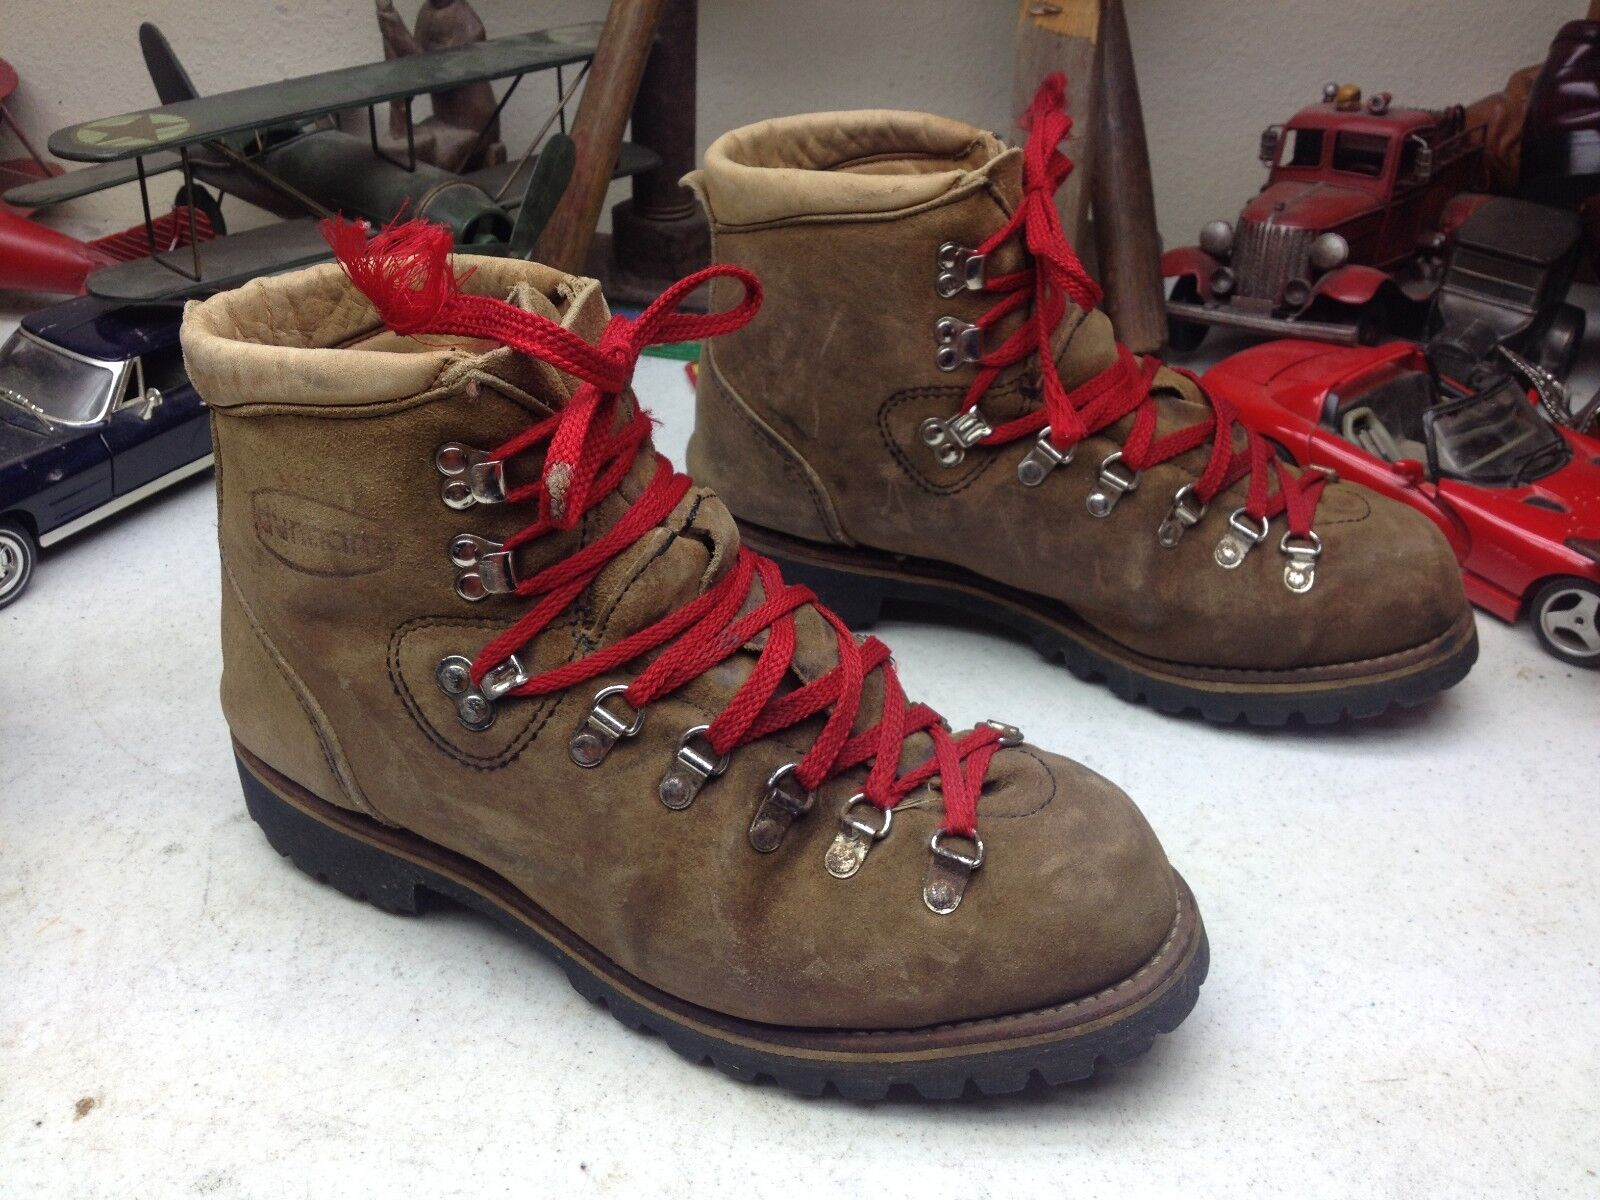 MADE IN USA DUNHAM BROWN LEATHER LACE UP MOUNTAIN TRAIL HIKING BOOTS 8.5 D